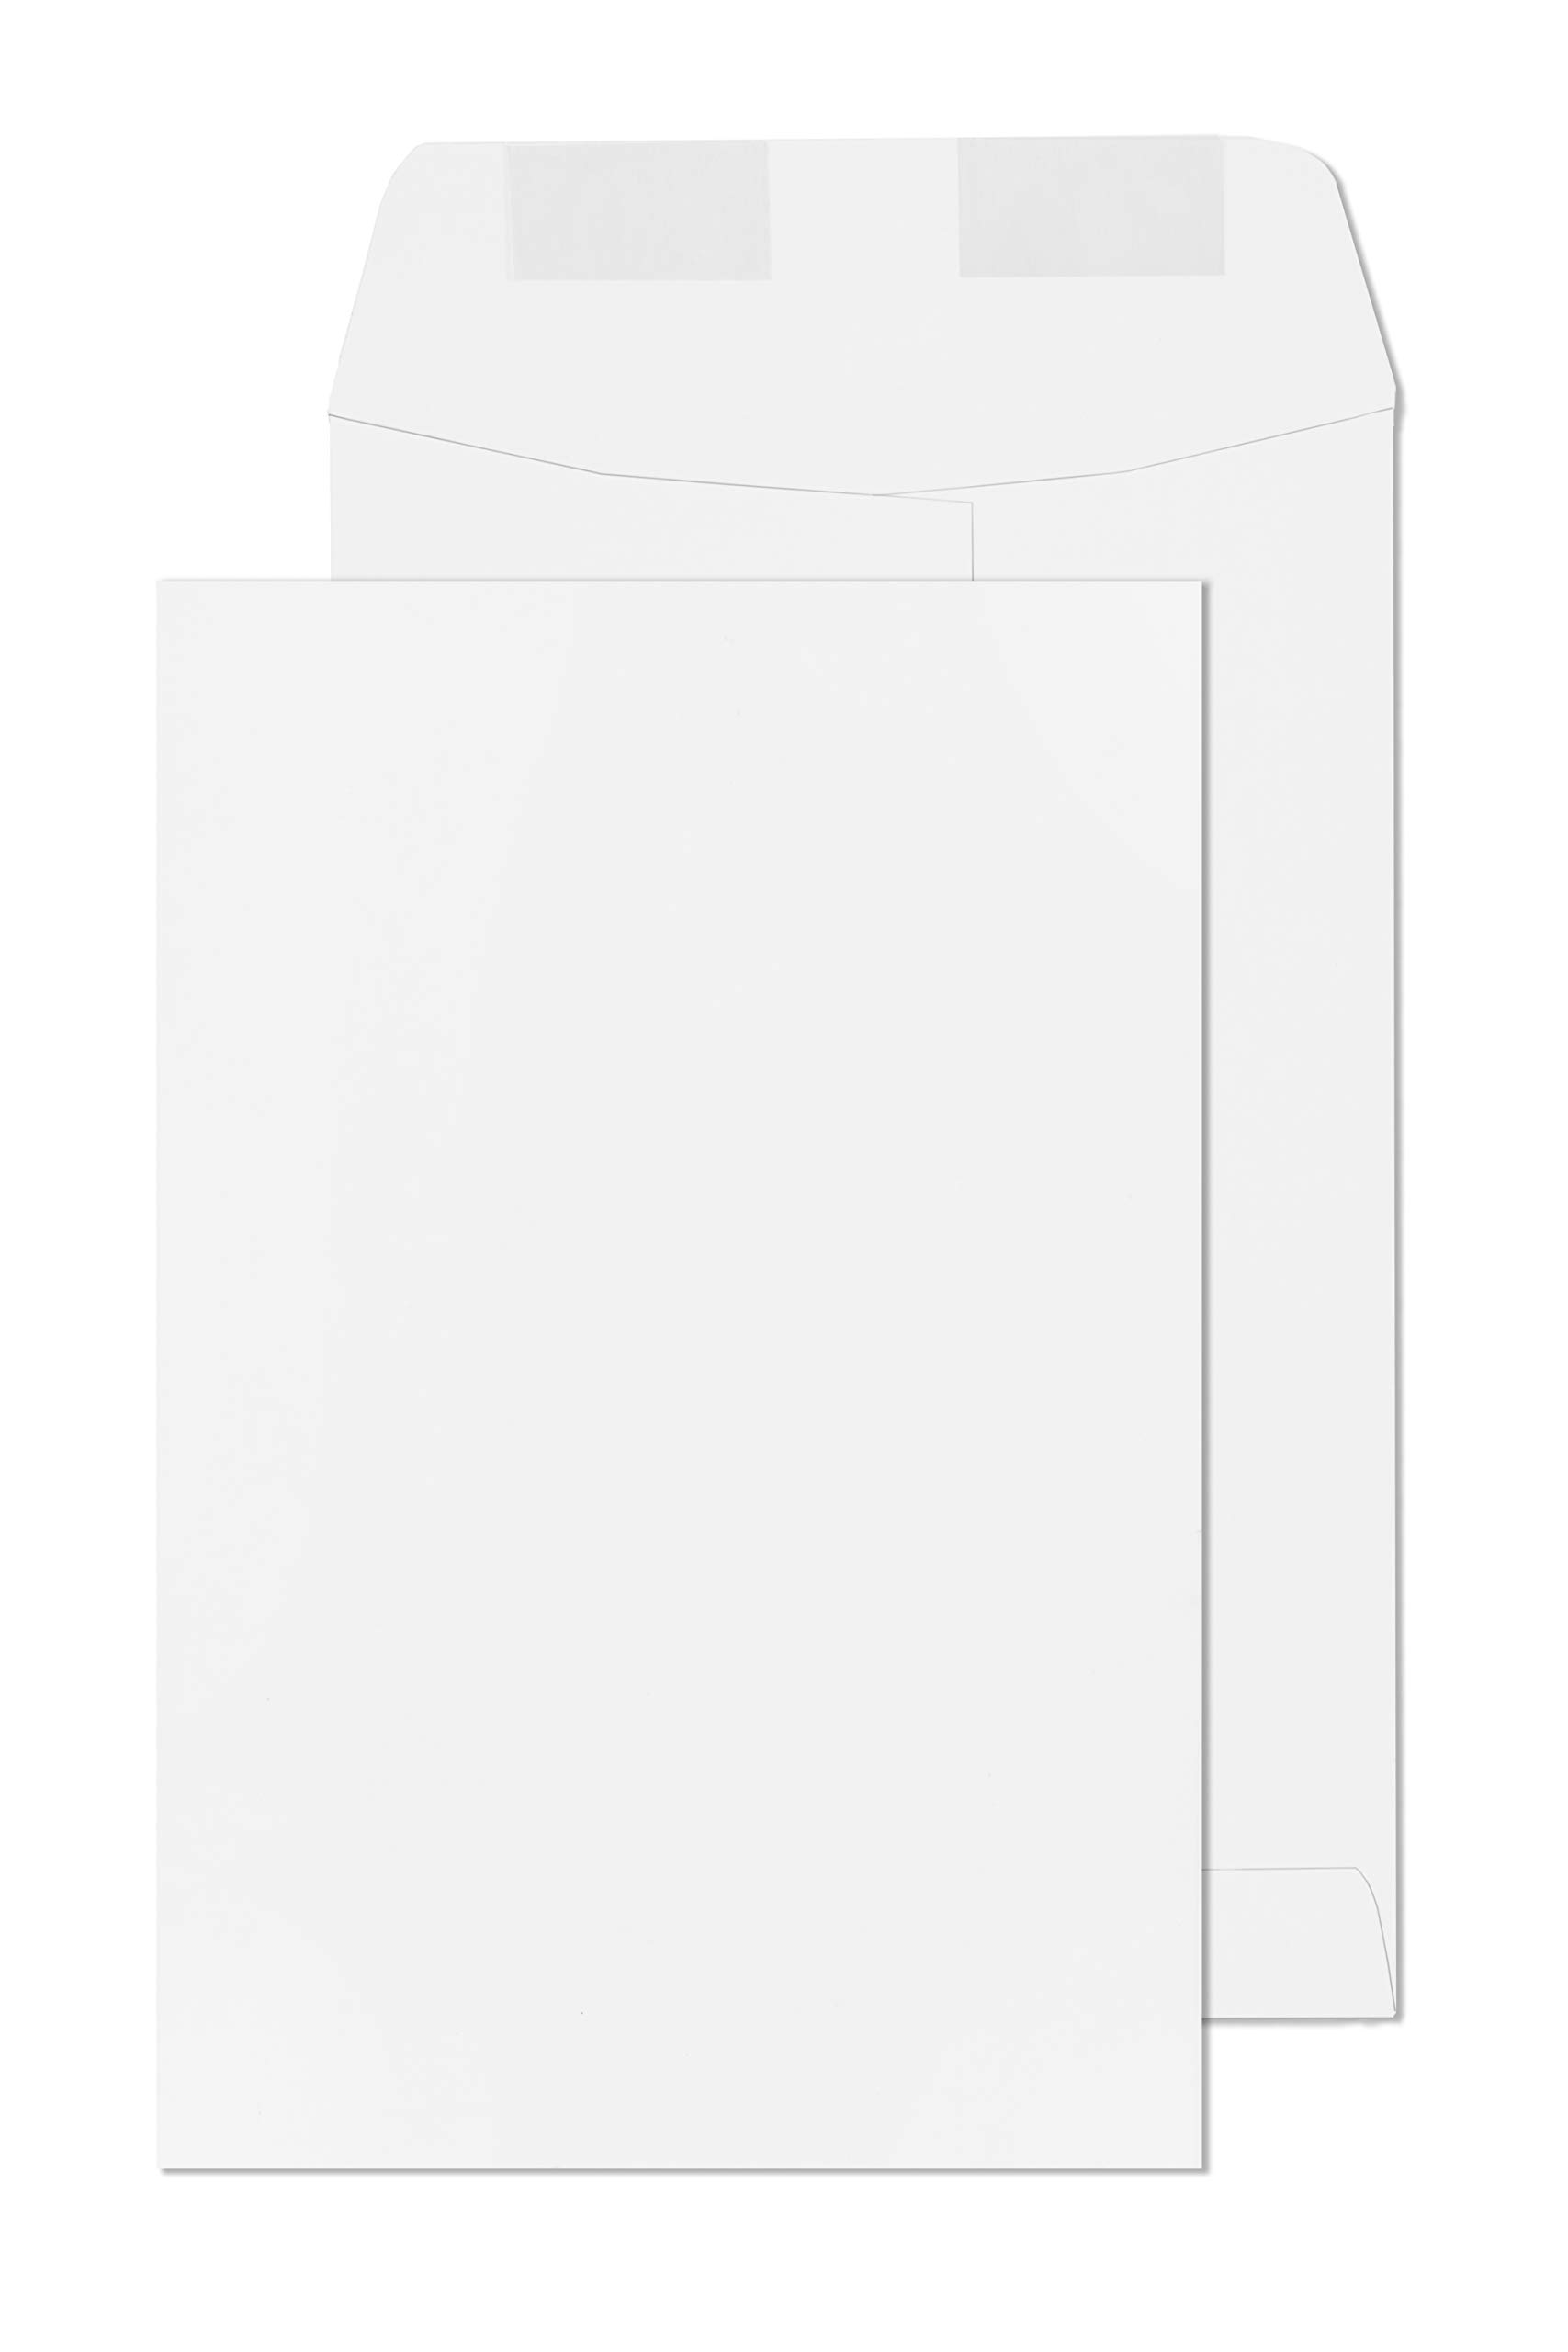 6x9 Envelopes White 500 Box Open End Catalog Envelope -Bulk Box 6'' x 9'' by EnDoc